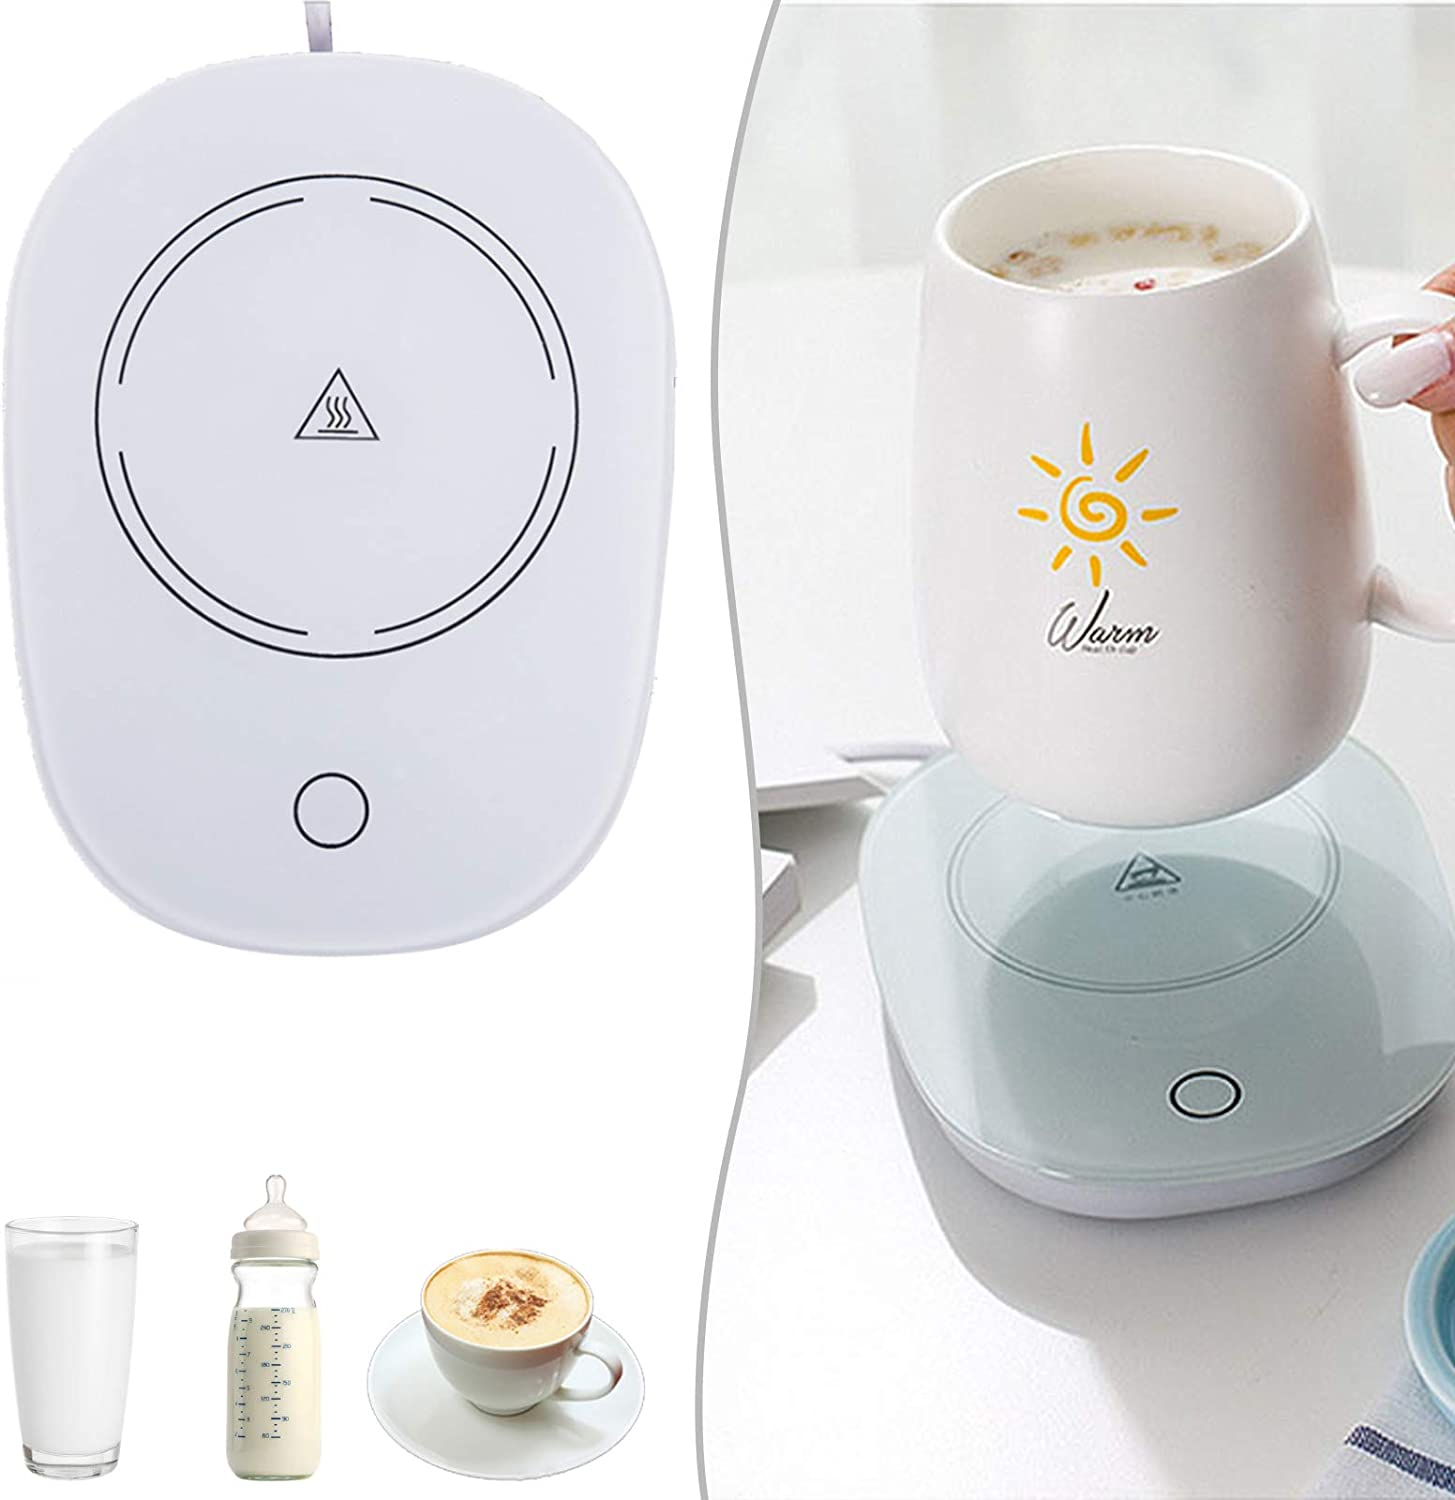 Coffee Mug Warmer for Desk,Coffee Warmer with Automatic Shut Off Cup Warmer with Gravity Induction Keep Temperature Up to 131℉/ 55℃,Coffee Beverage Warmer for Tea,Water,Soup,Milk